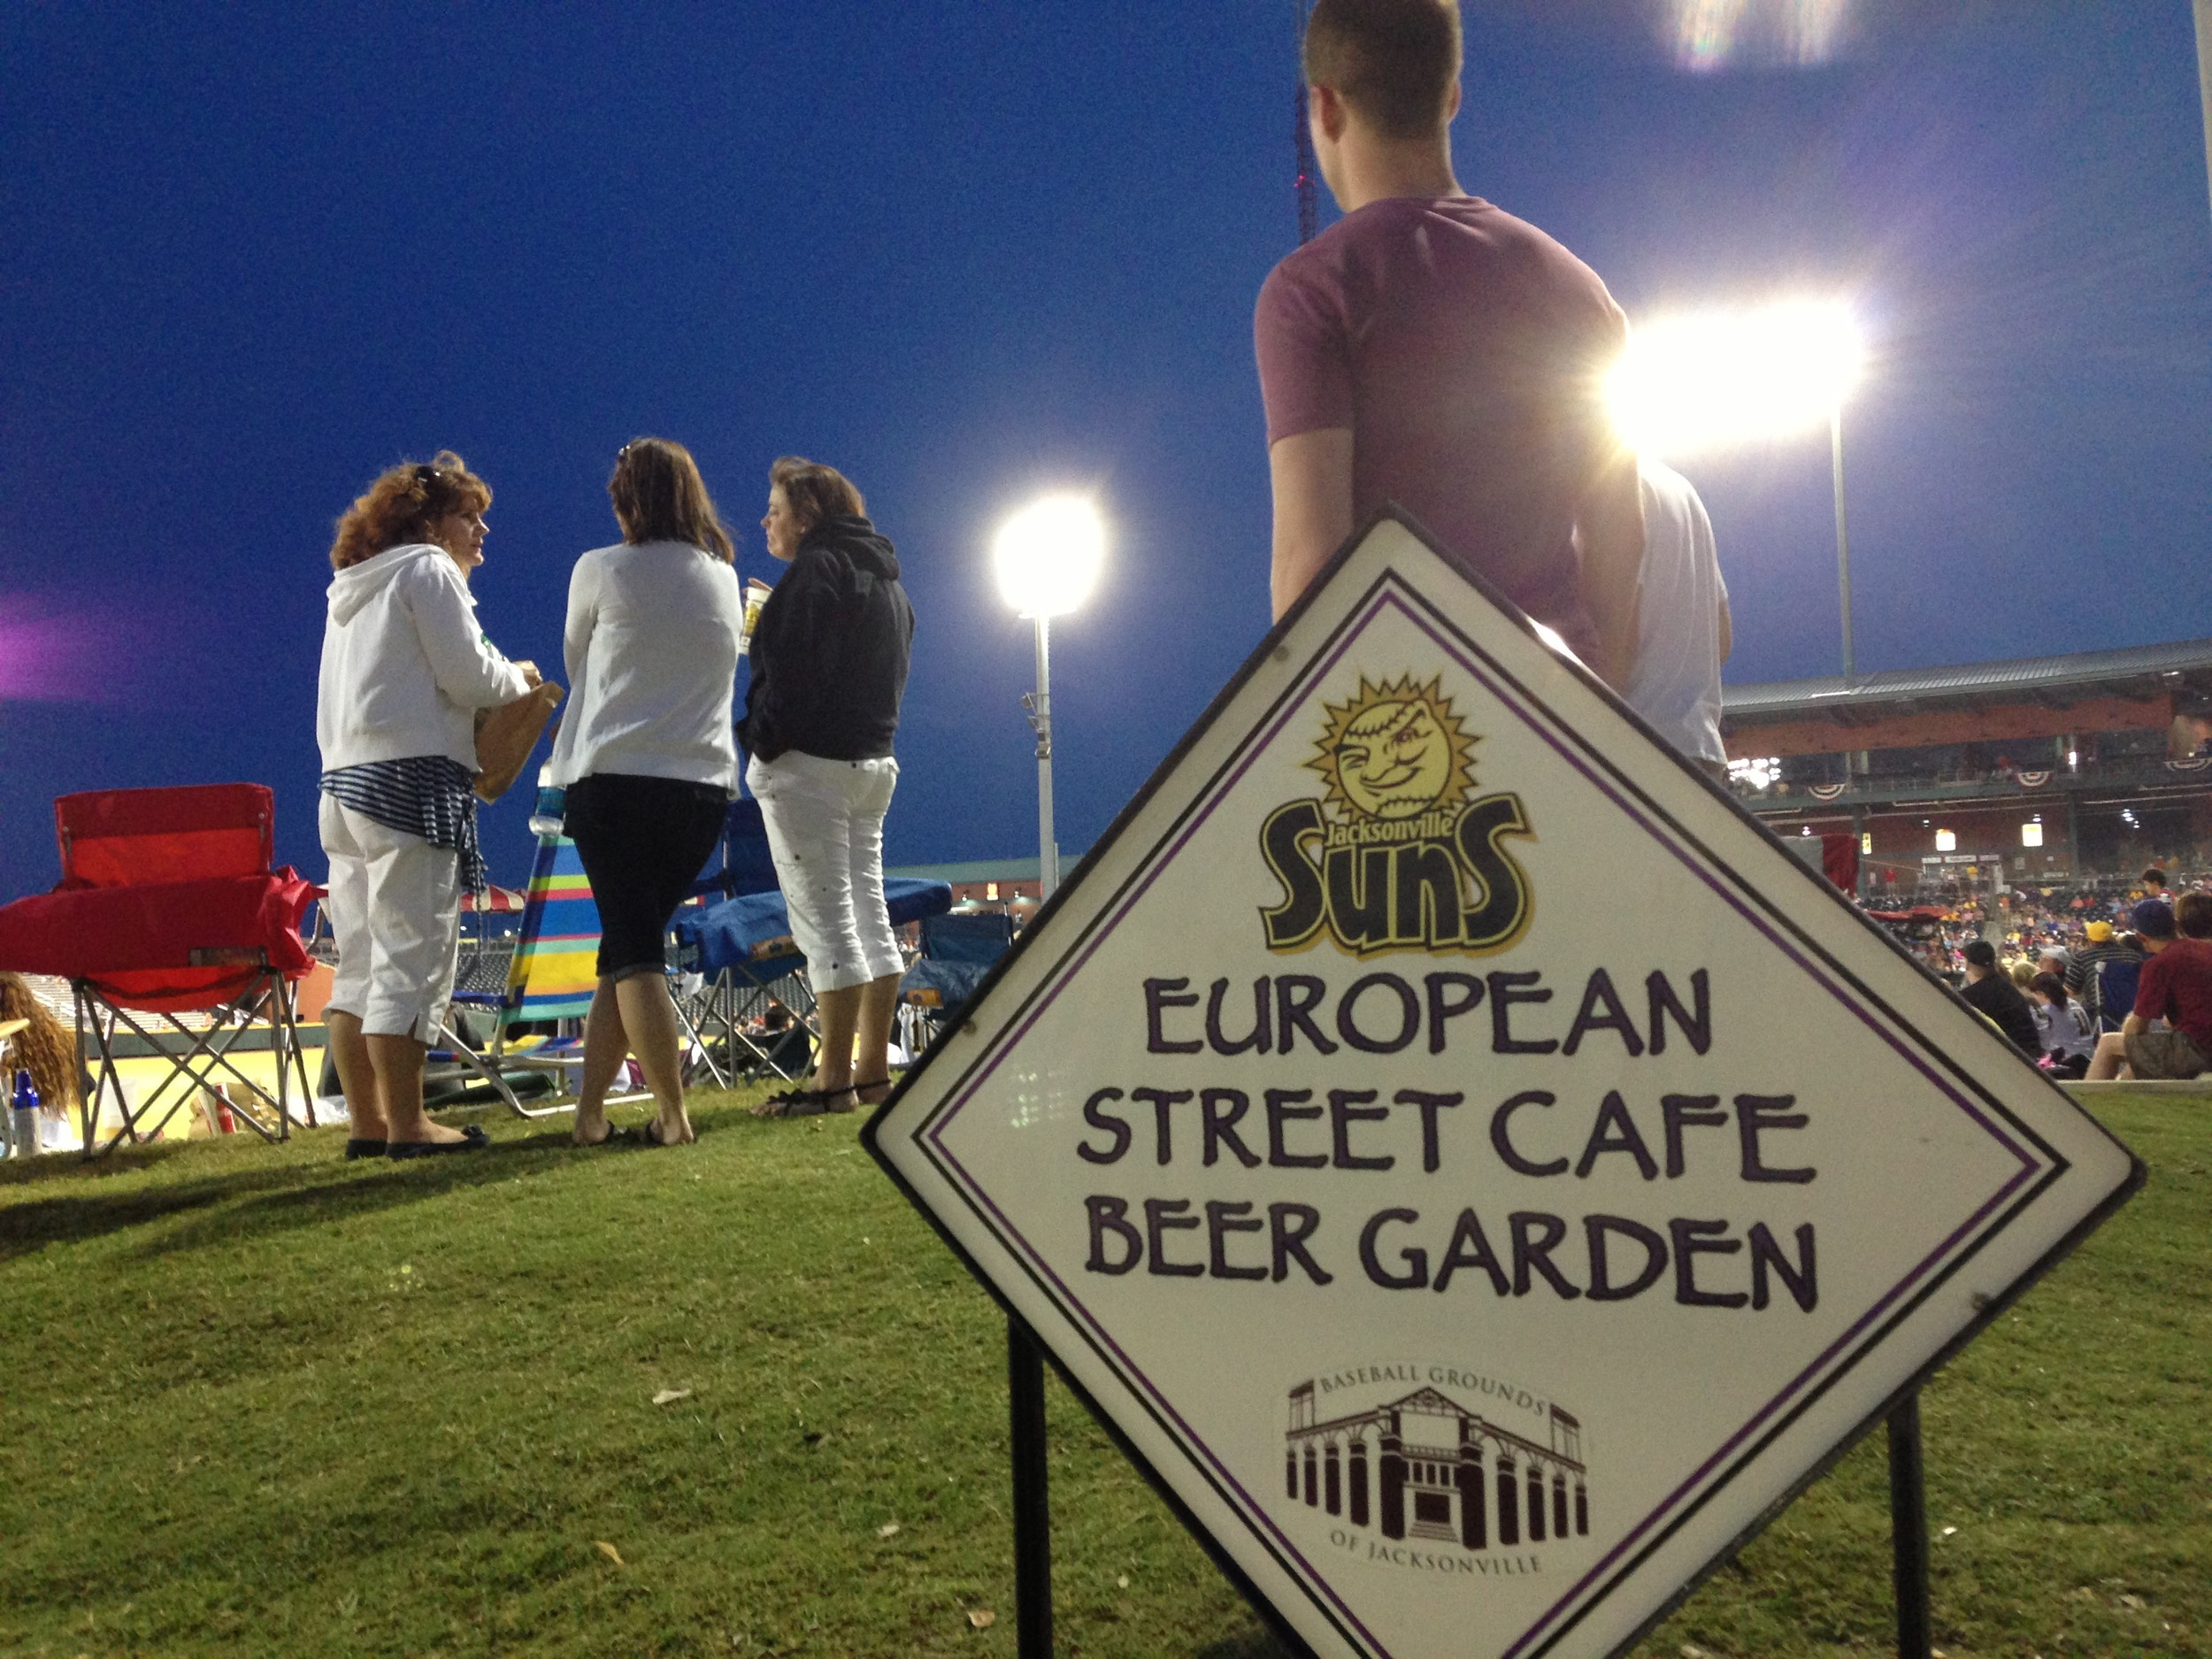 European Street Café Beer Garden at the Jacksonville Suns